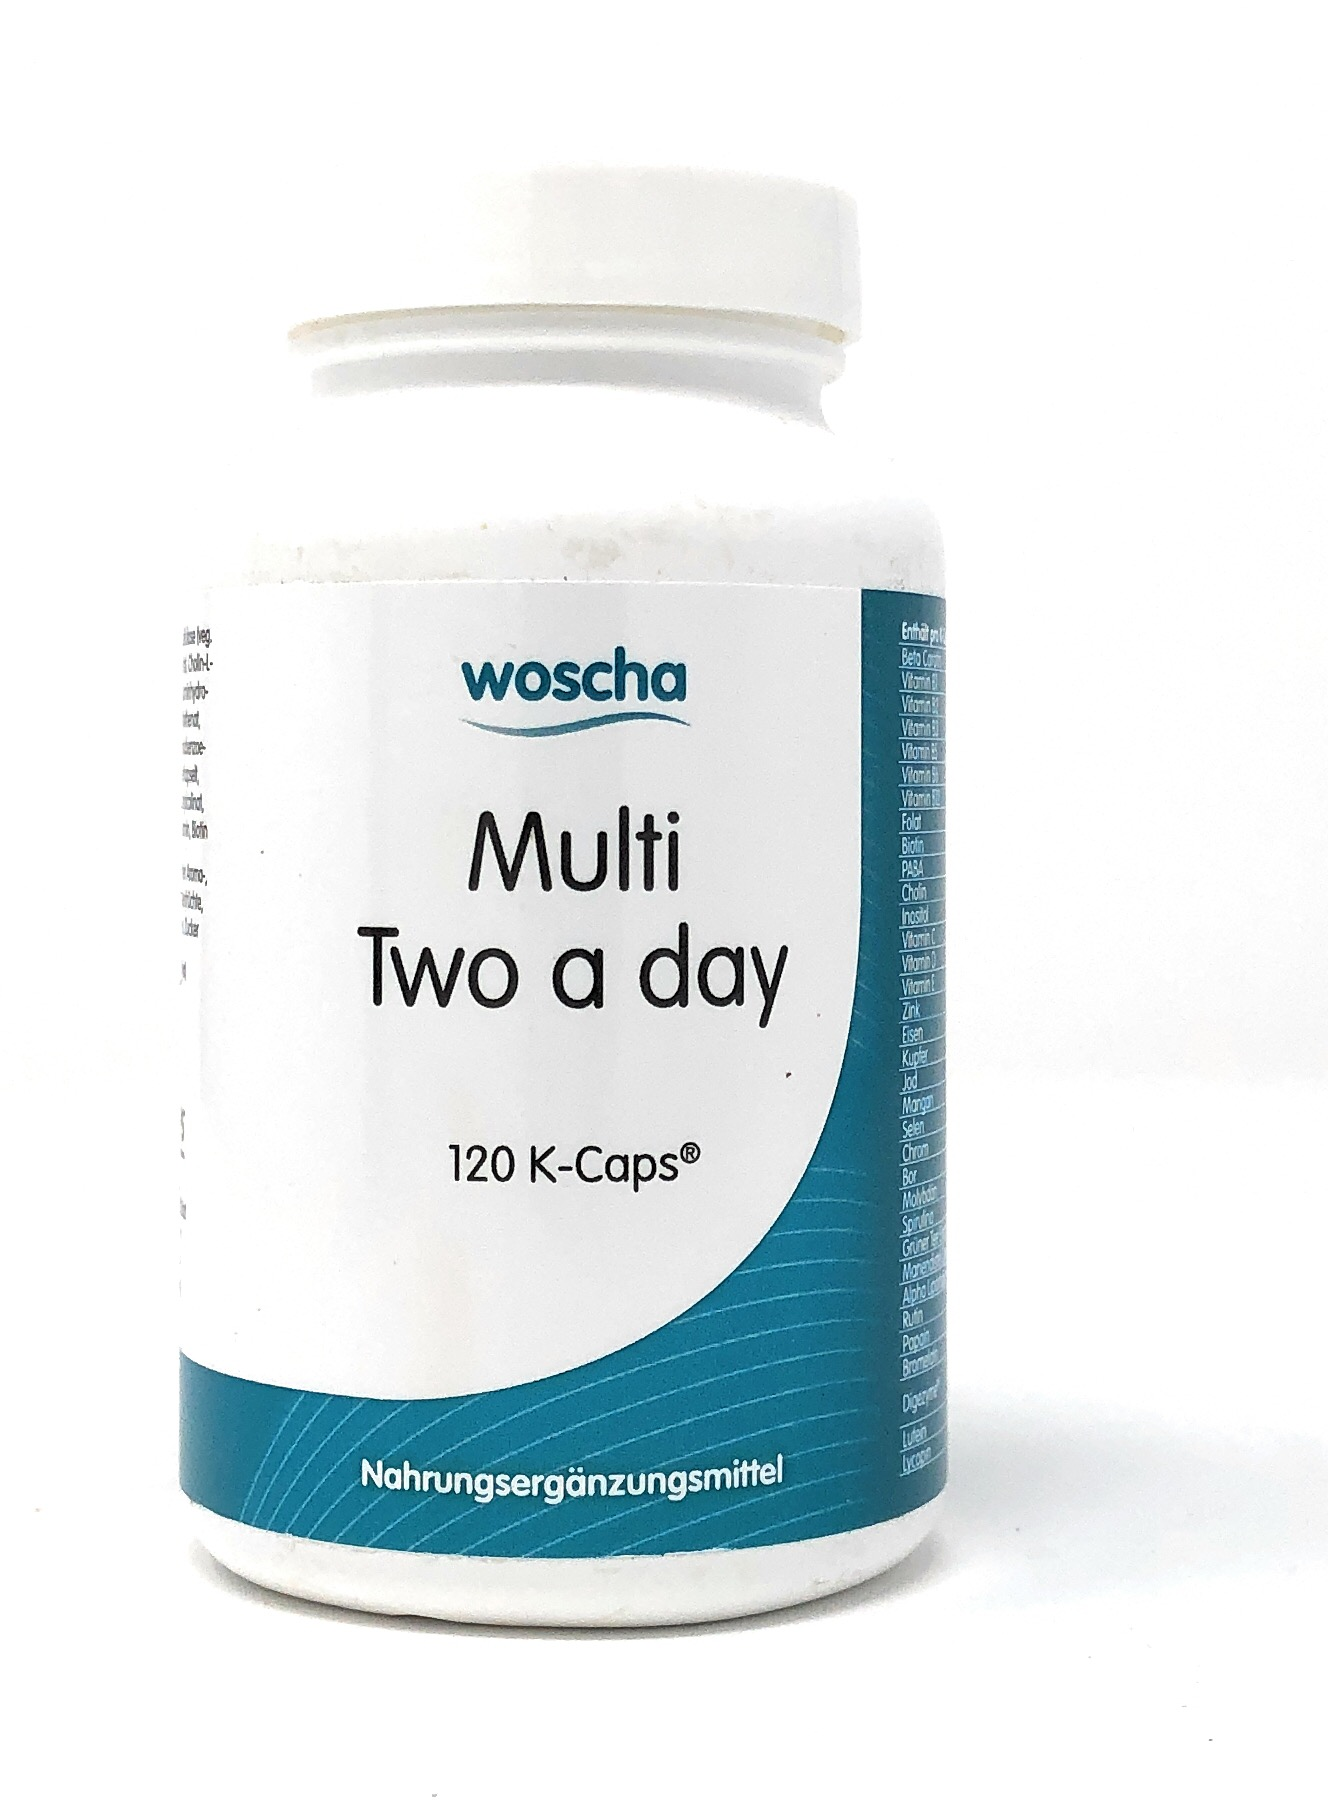 Woscha Multi Two a Day 120 K-CAPS® (vegan) (104g)